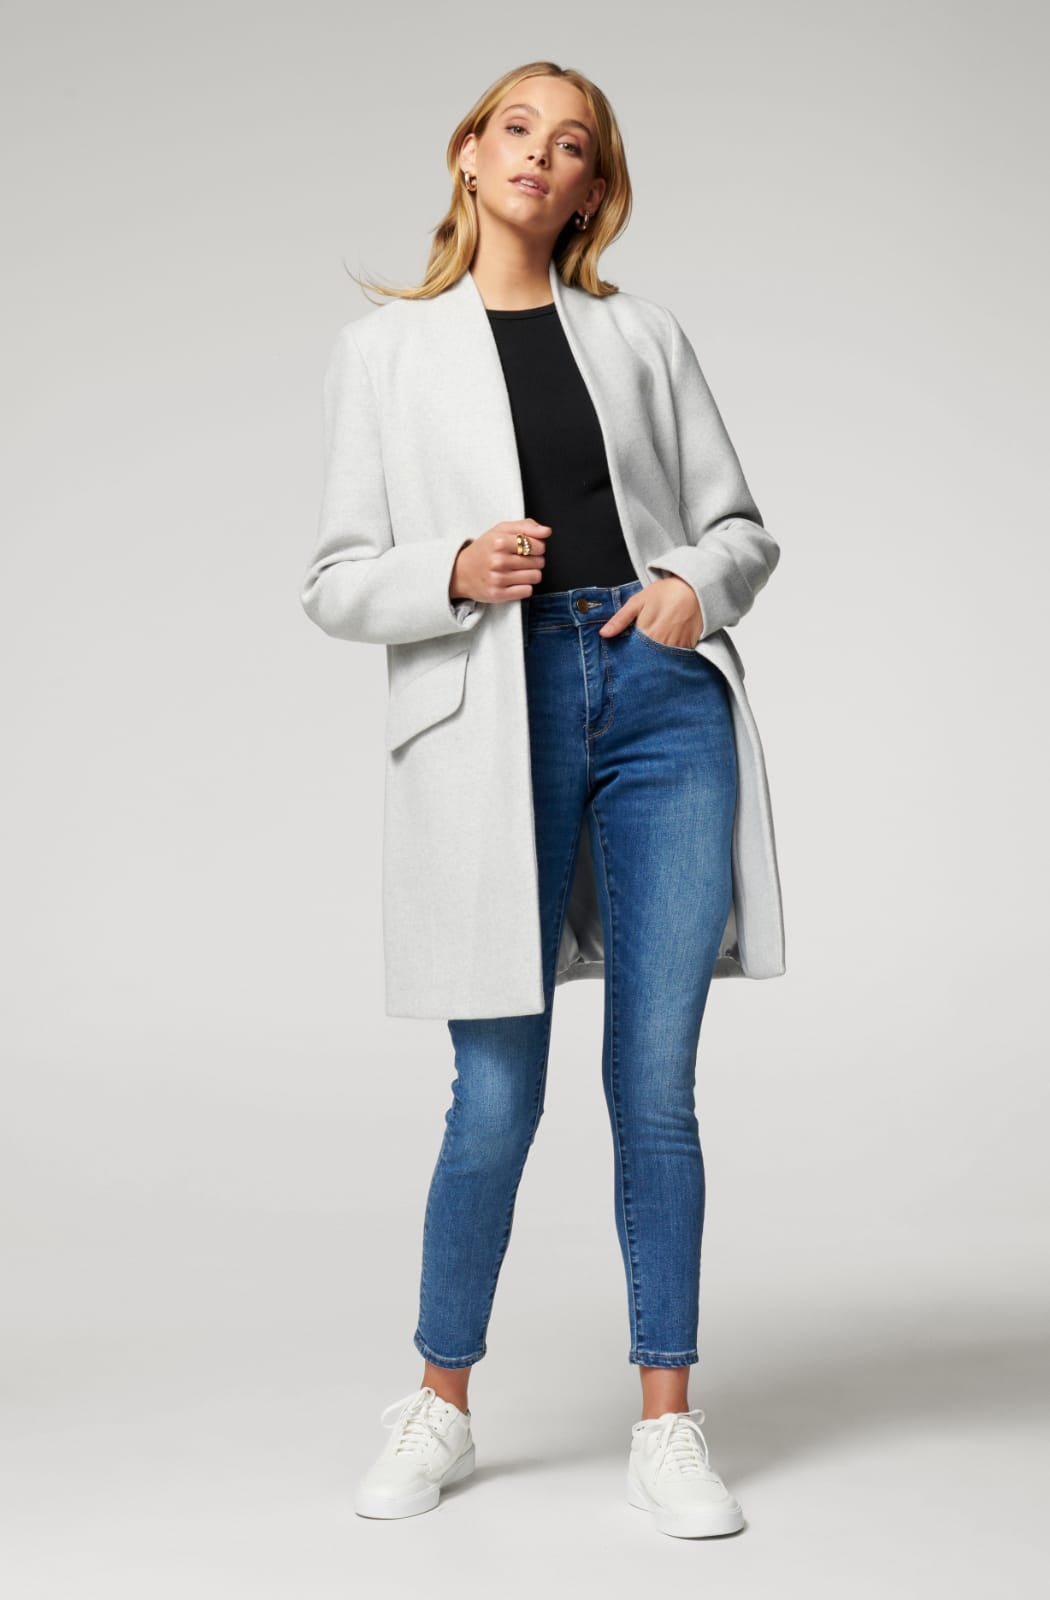 Forever New Women's Jackets and Coats